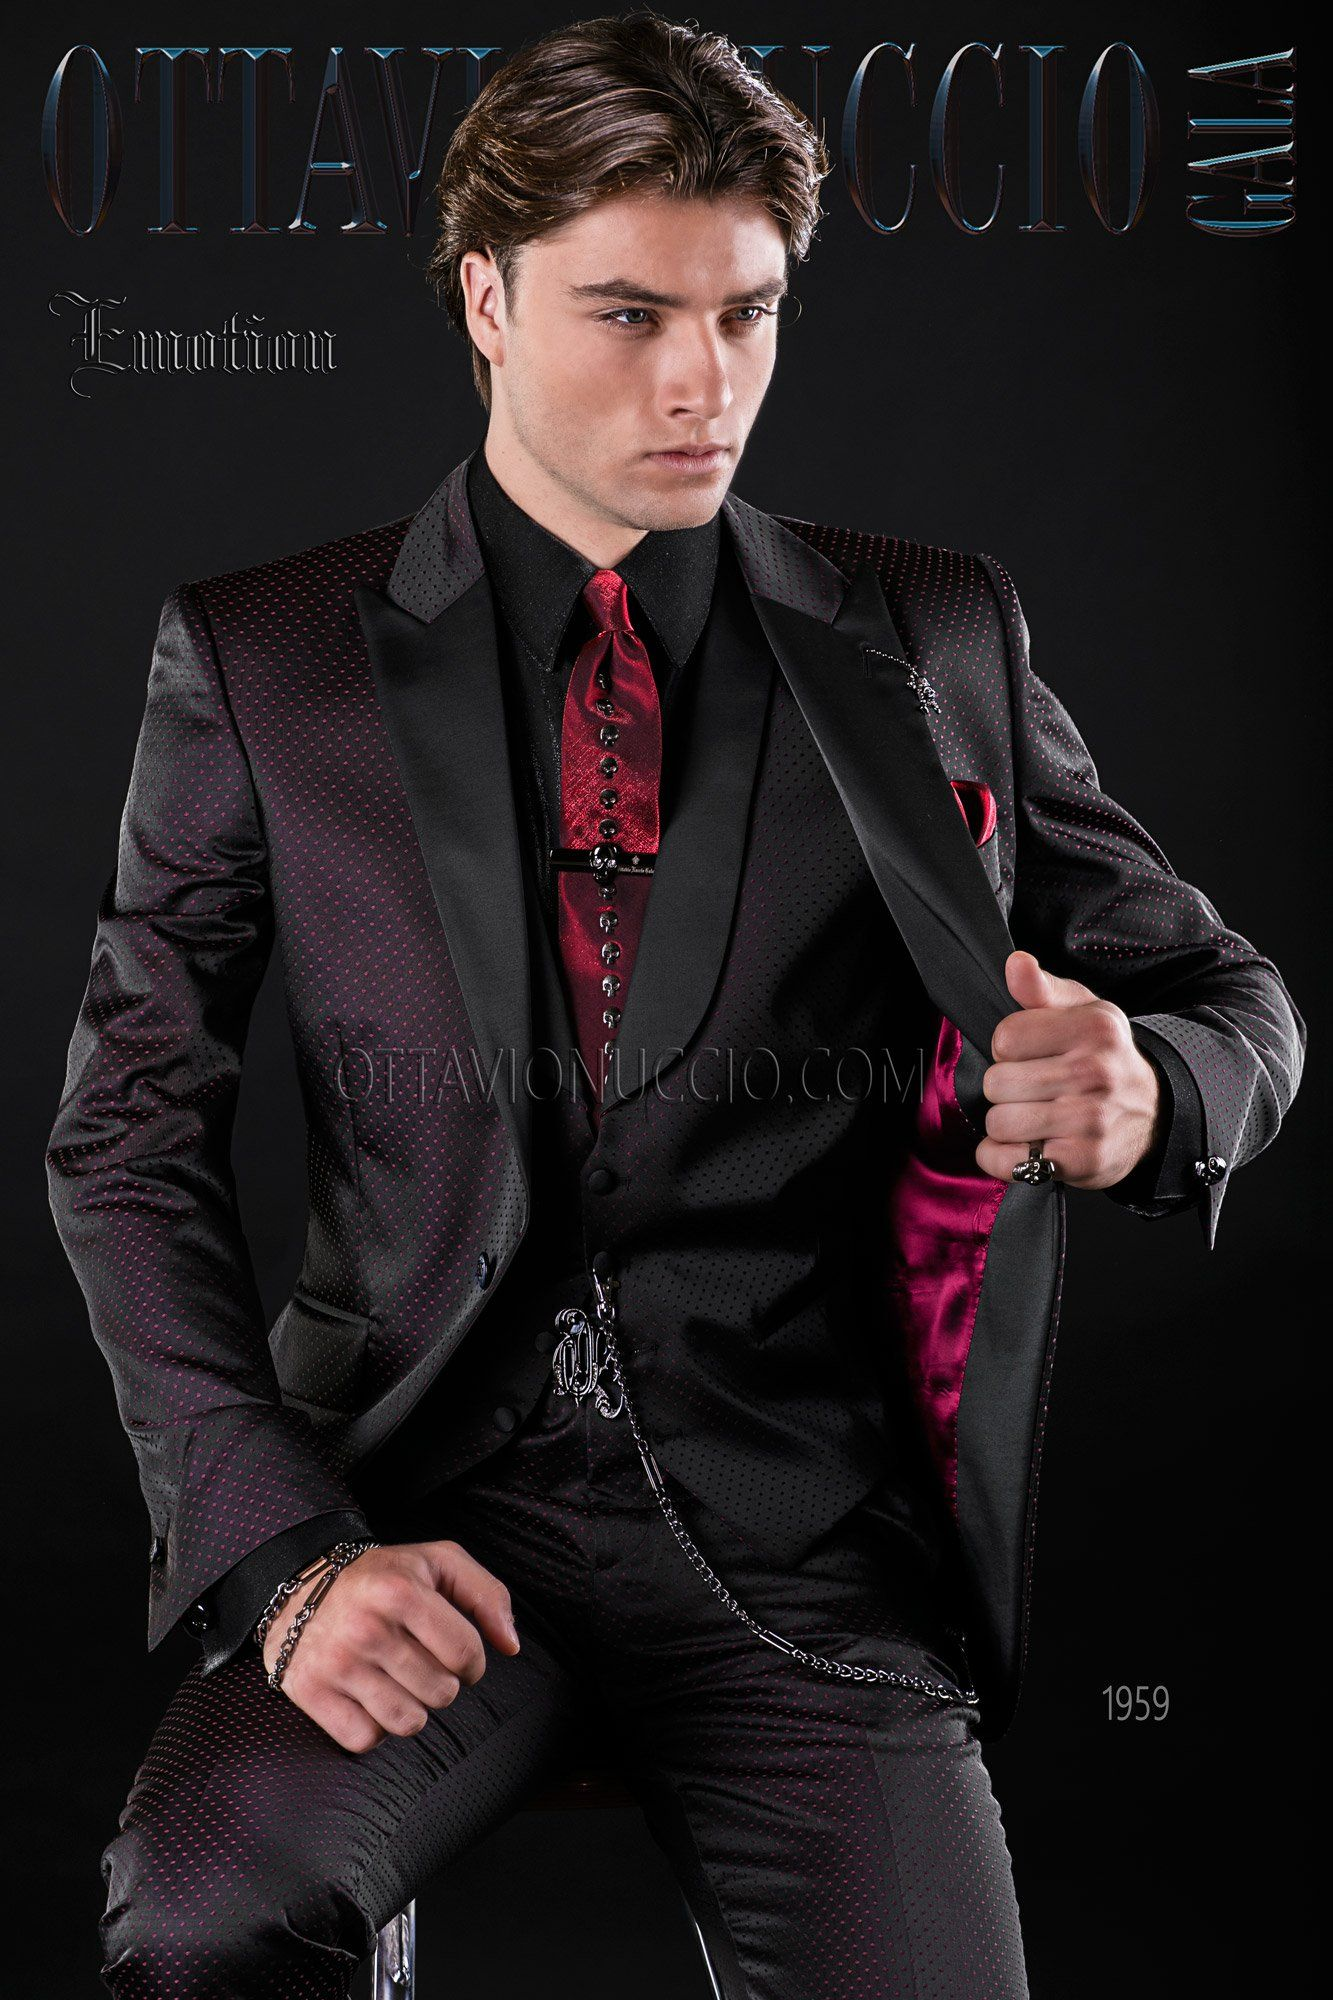 6d26d54accd7a6 Black and red Italian wedding tuxedo #groom #suit #luxury #menswear  #menstyle